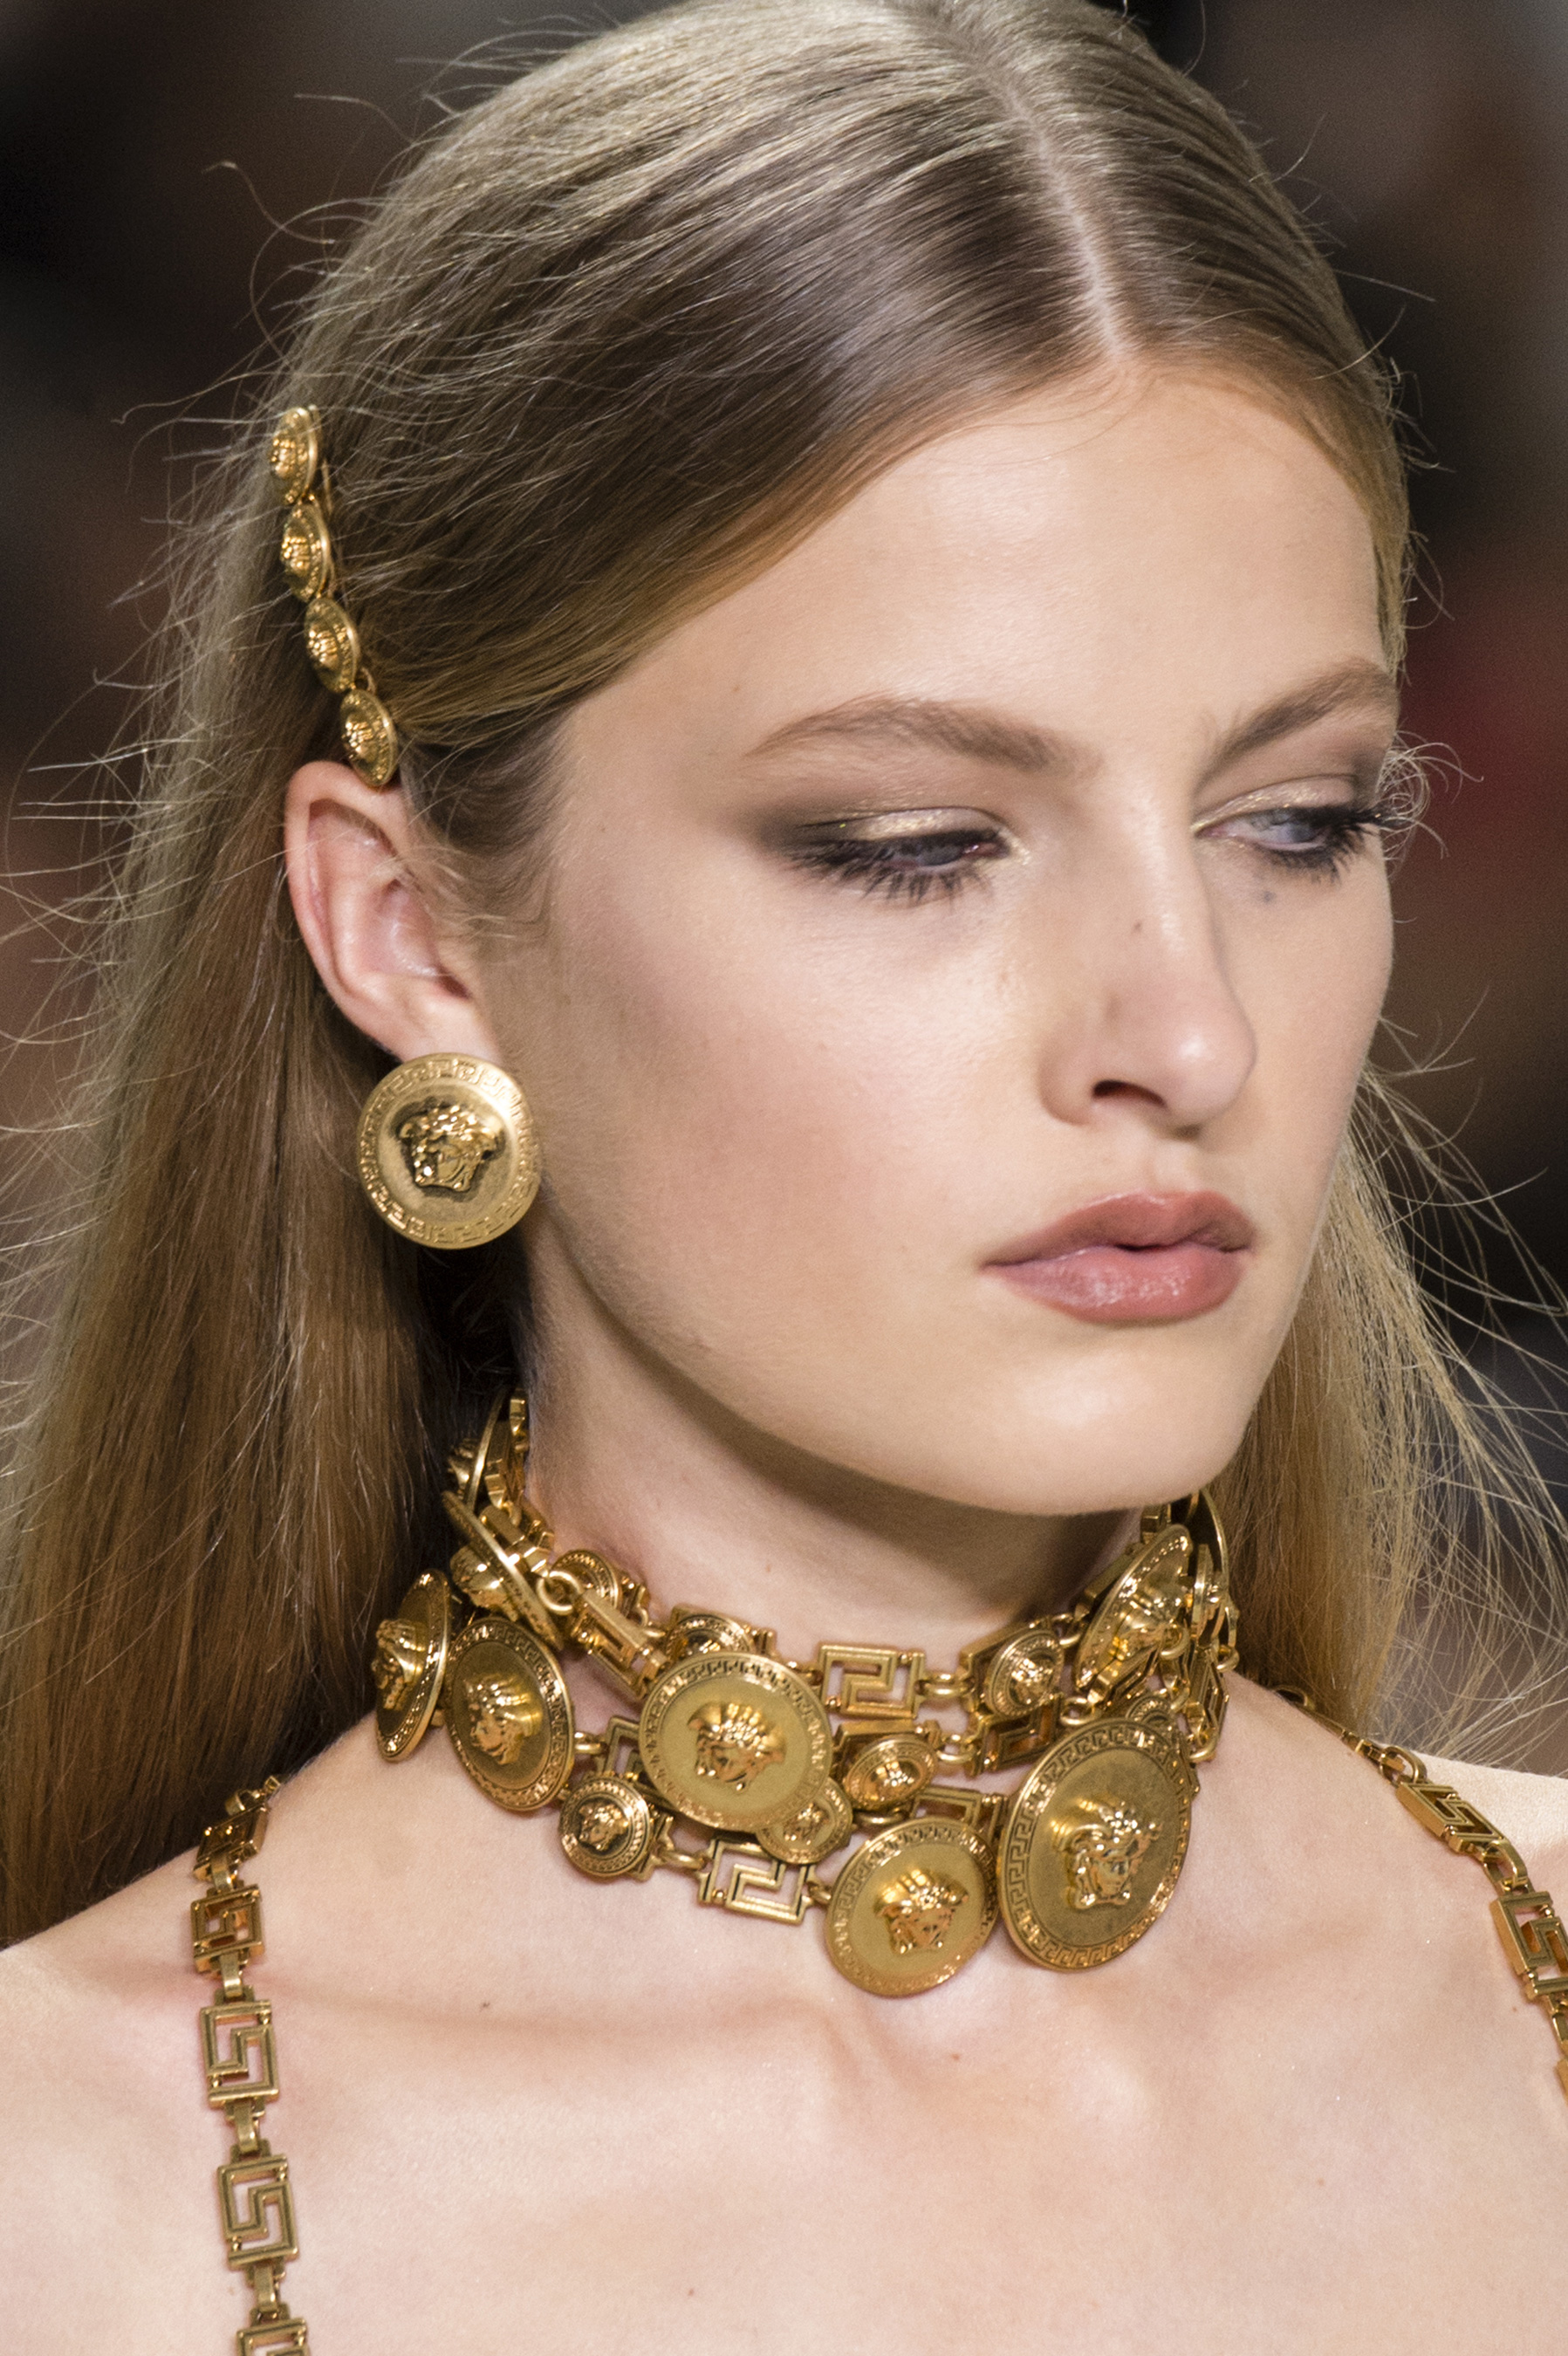 Spring jewelry fashion accessories show 29